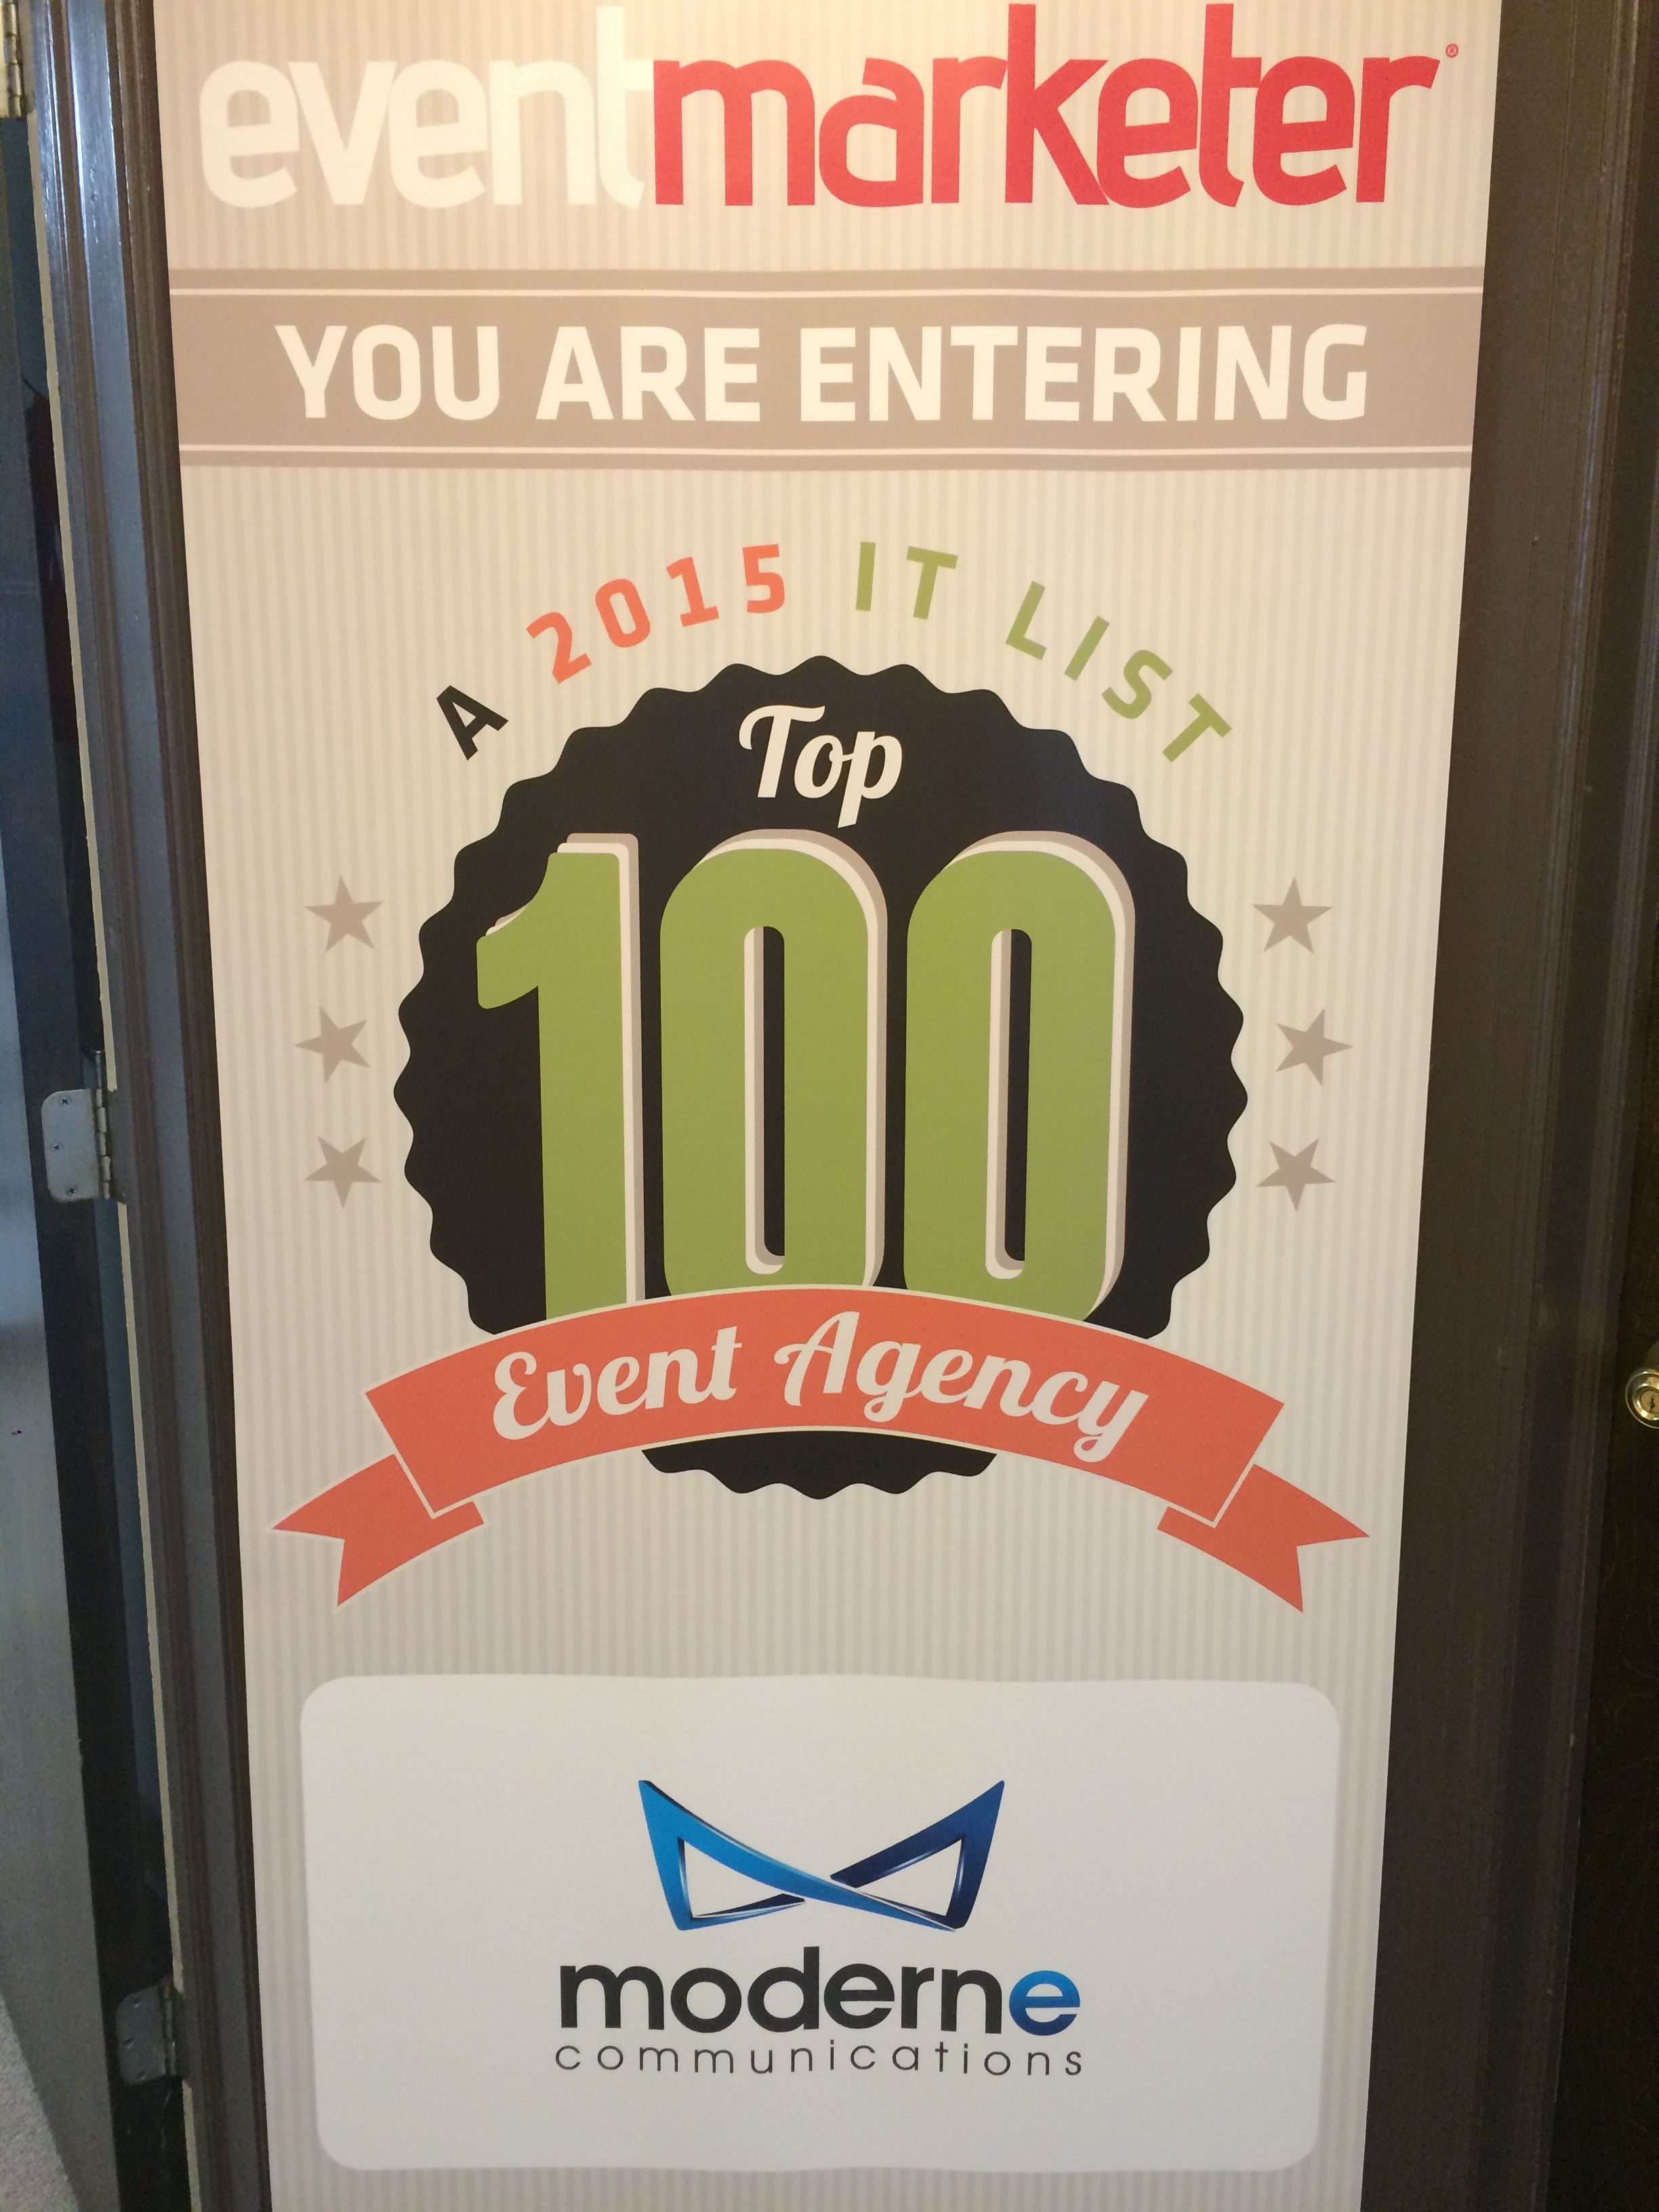 Top 100 Event Marketing Agency Event Marketer Magazine